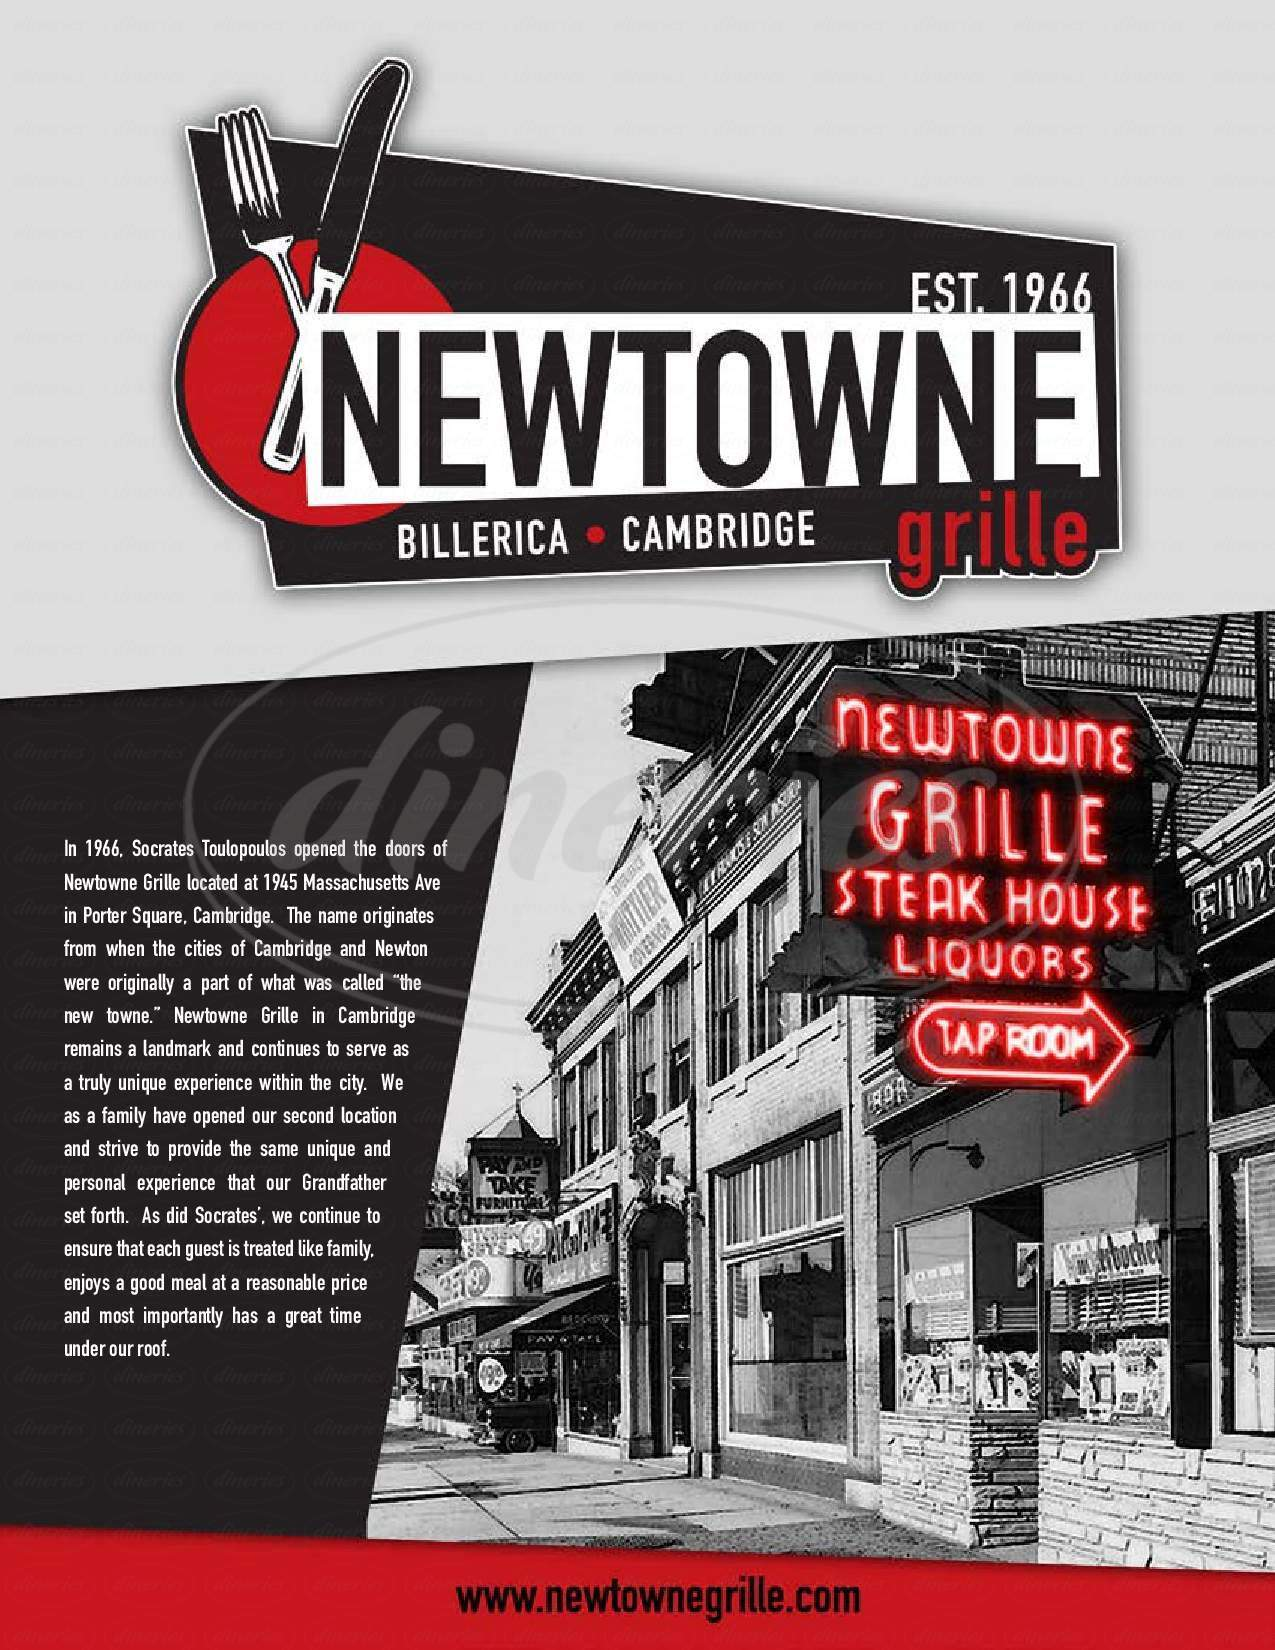 menu for Newtowne Grille